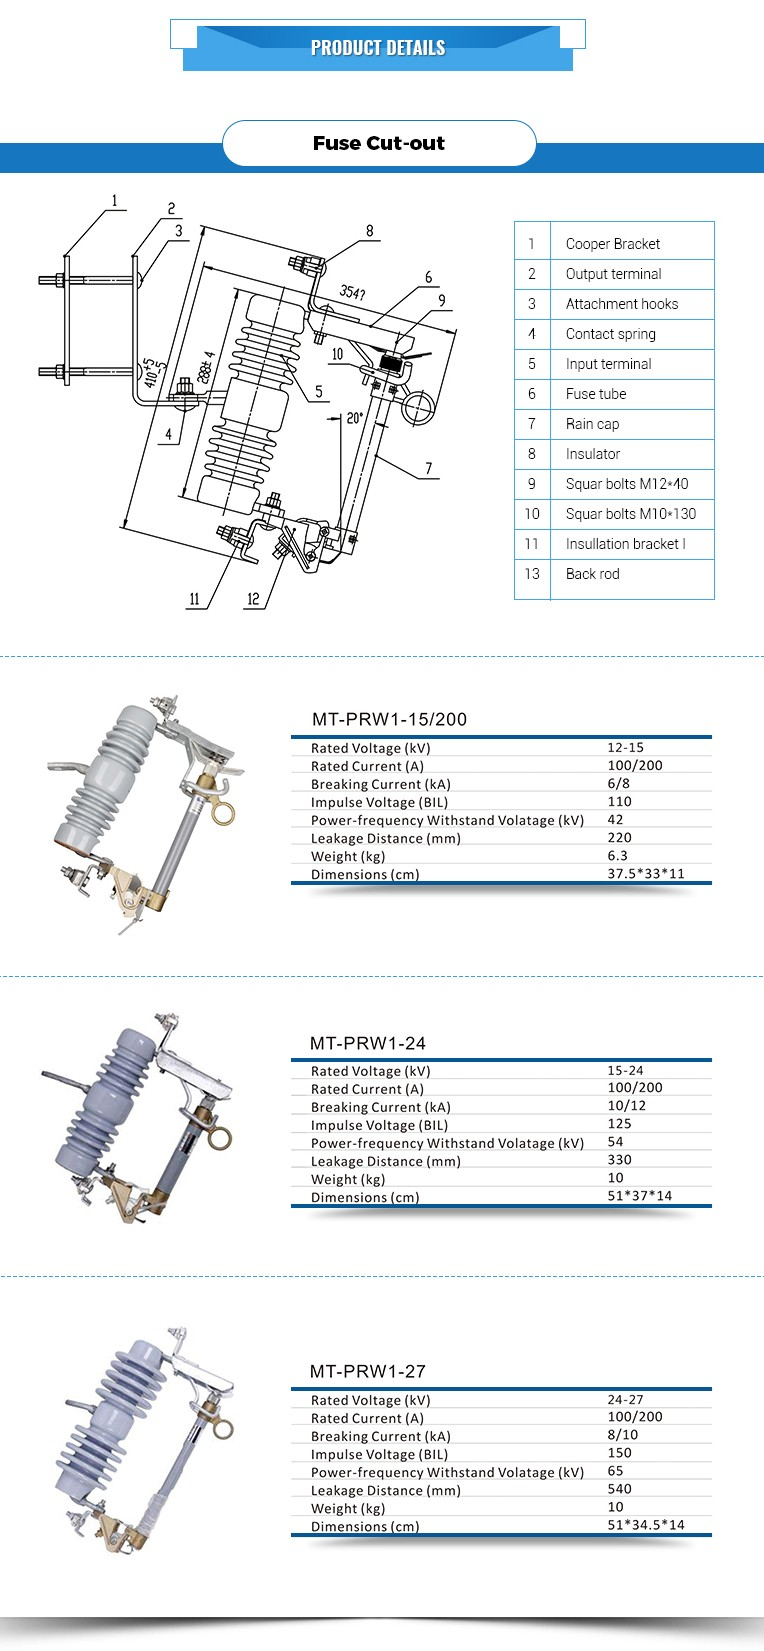 Wenzhou High Voltage Ab Chance Model Function Of Electrical Fuse Cutout